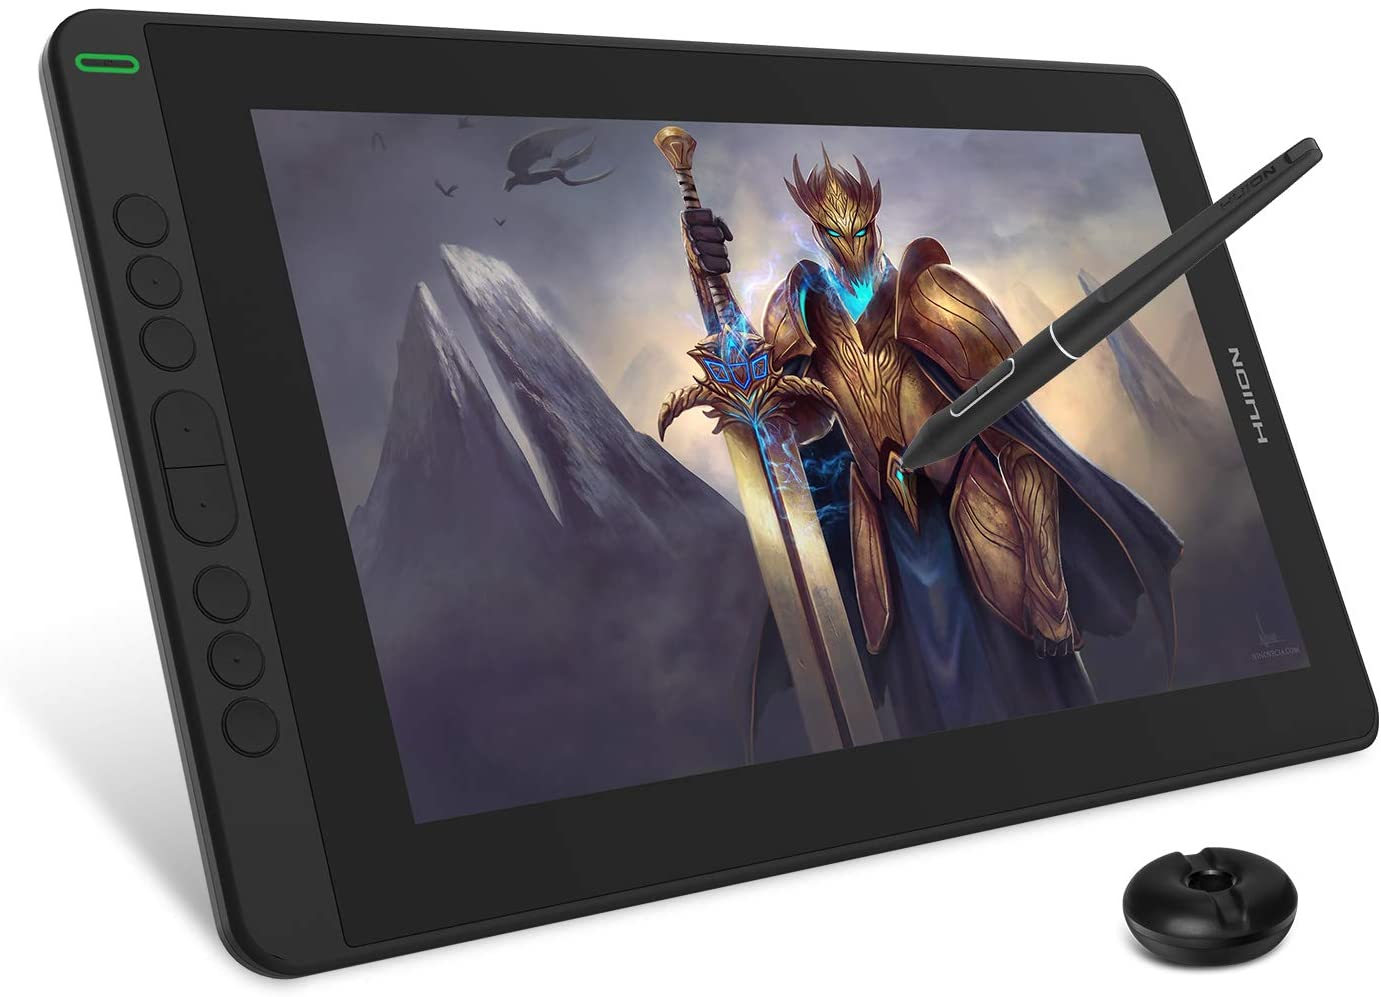 2020 HUION KAMVAS 13 Graphics Drawing Tablet with Full-Laminated Screen Android Support Battery-Free Sylus Tilt 8 Press Keys,13.3inch Pen Display,Black